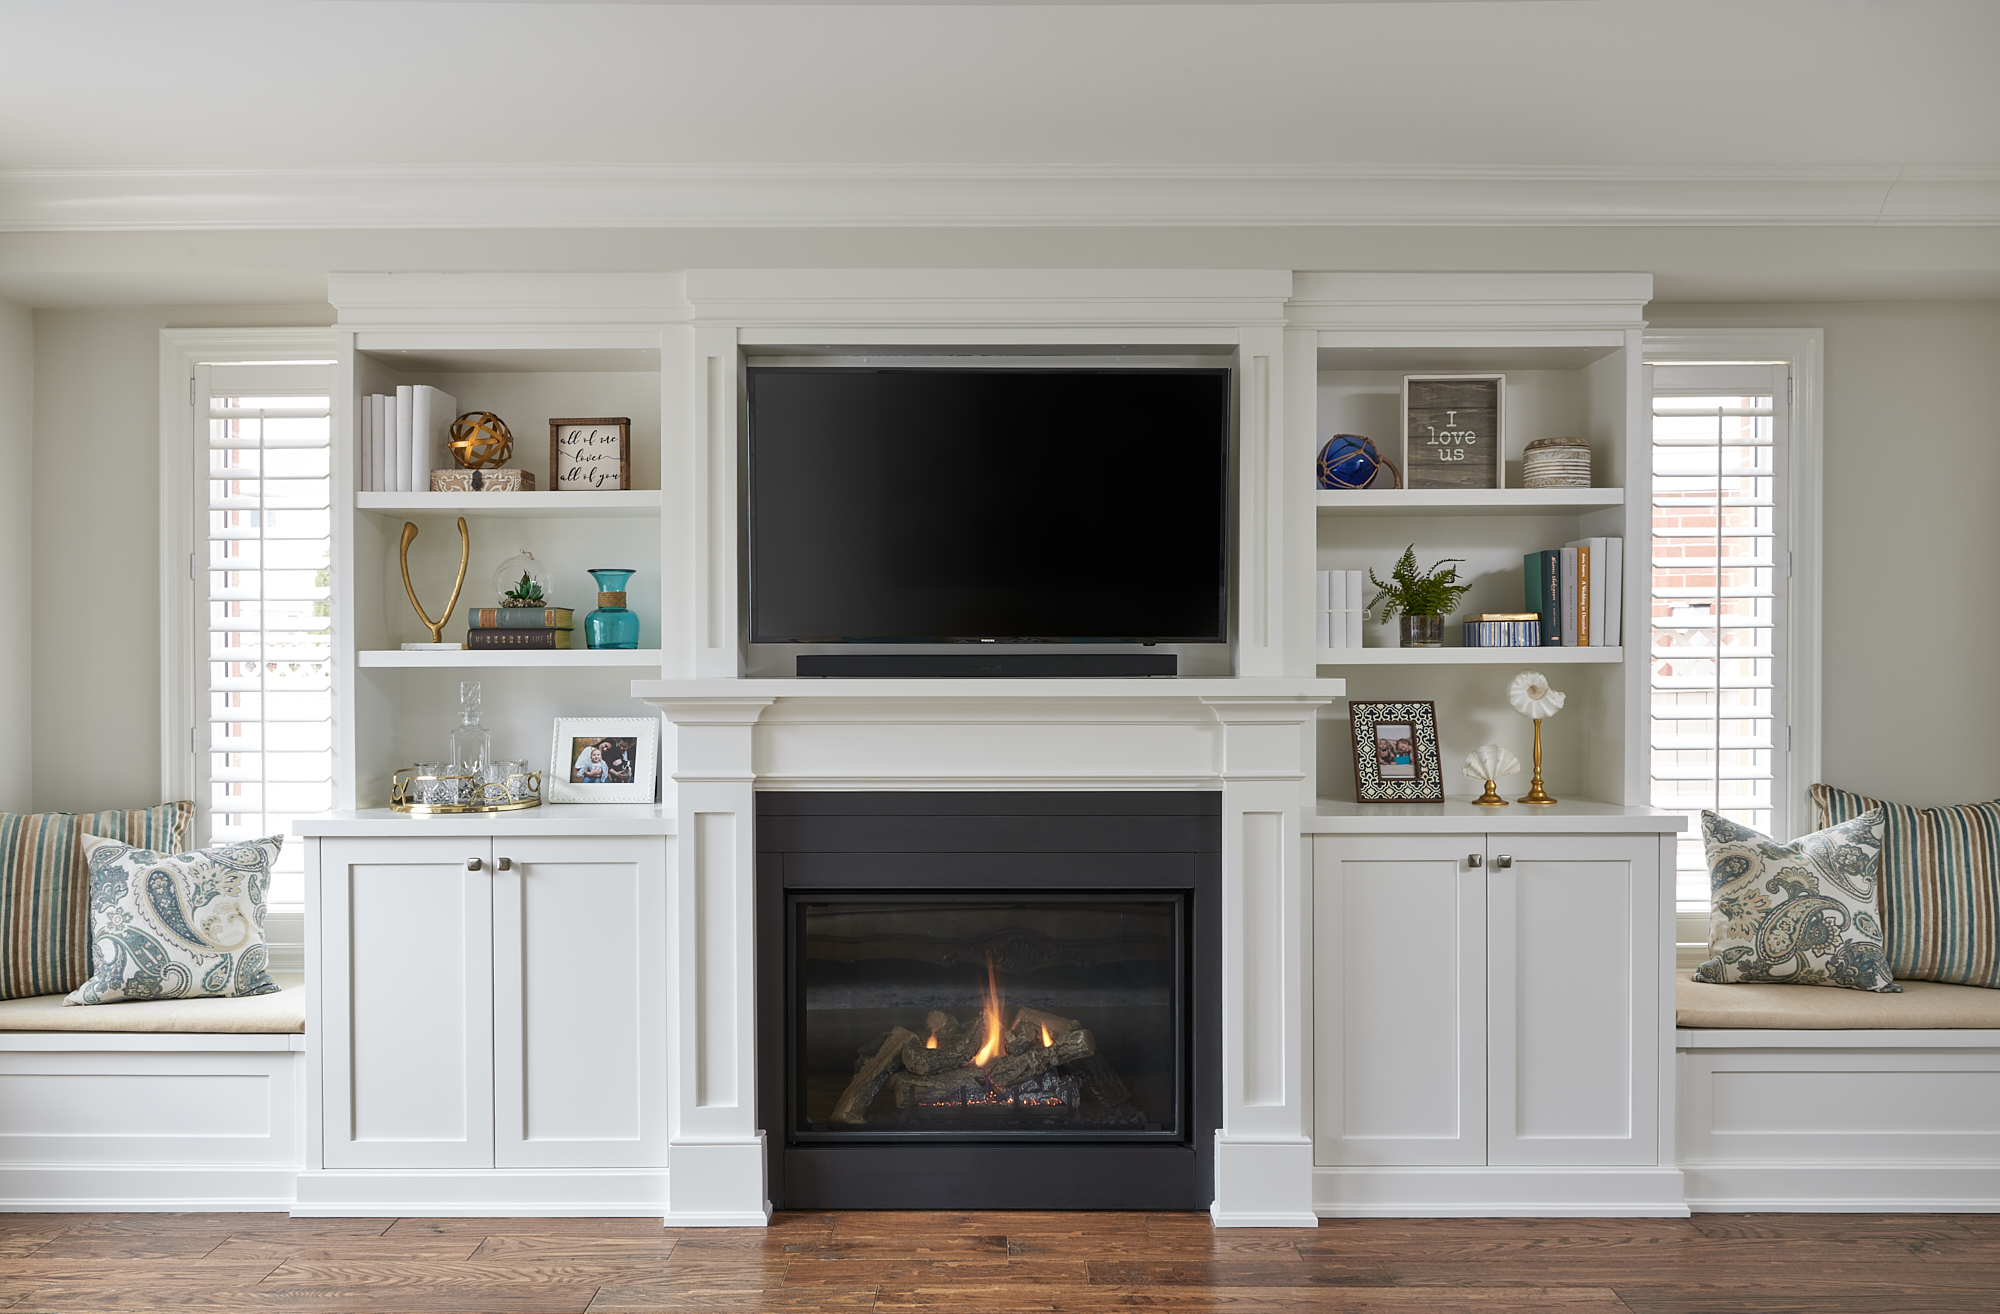 Oxford White Built-Ins with Fireplace, Classic Gray walls. Benjamin Moore